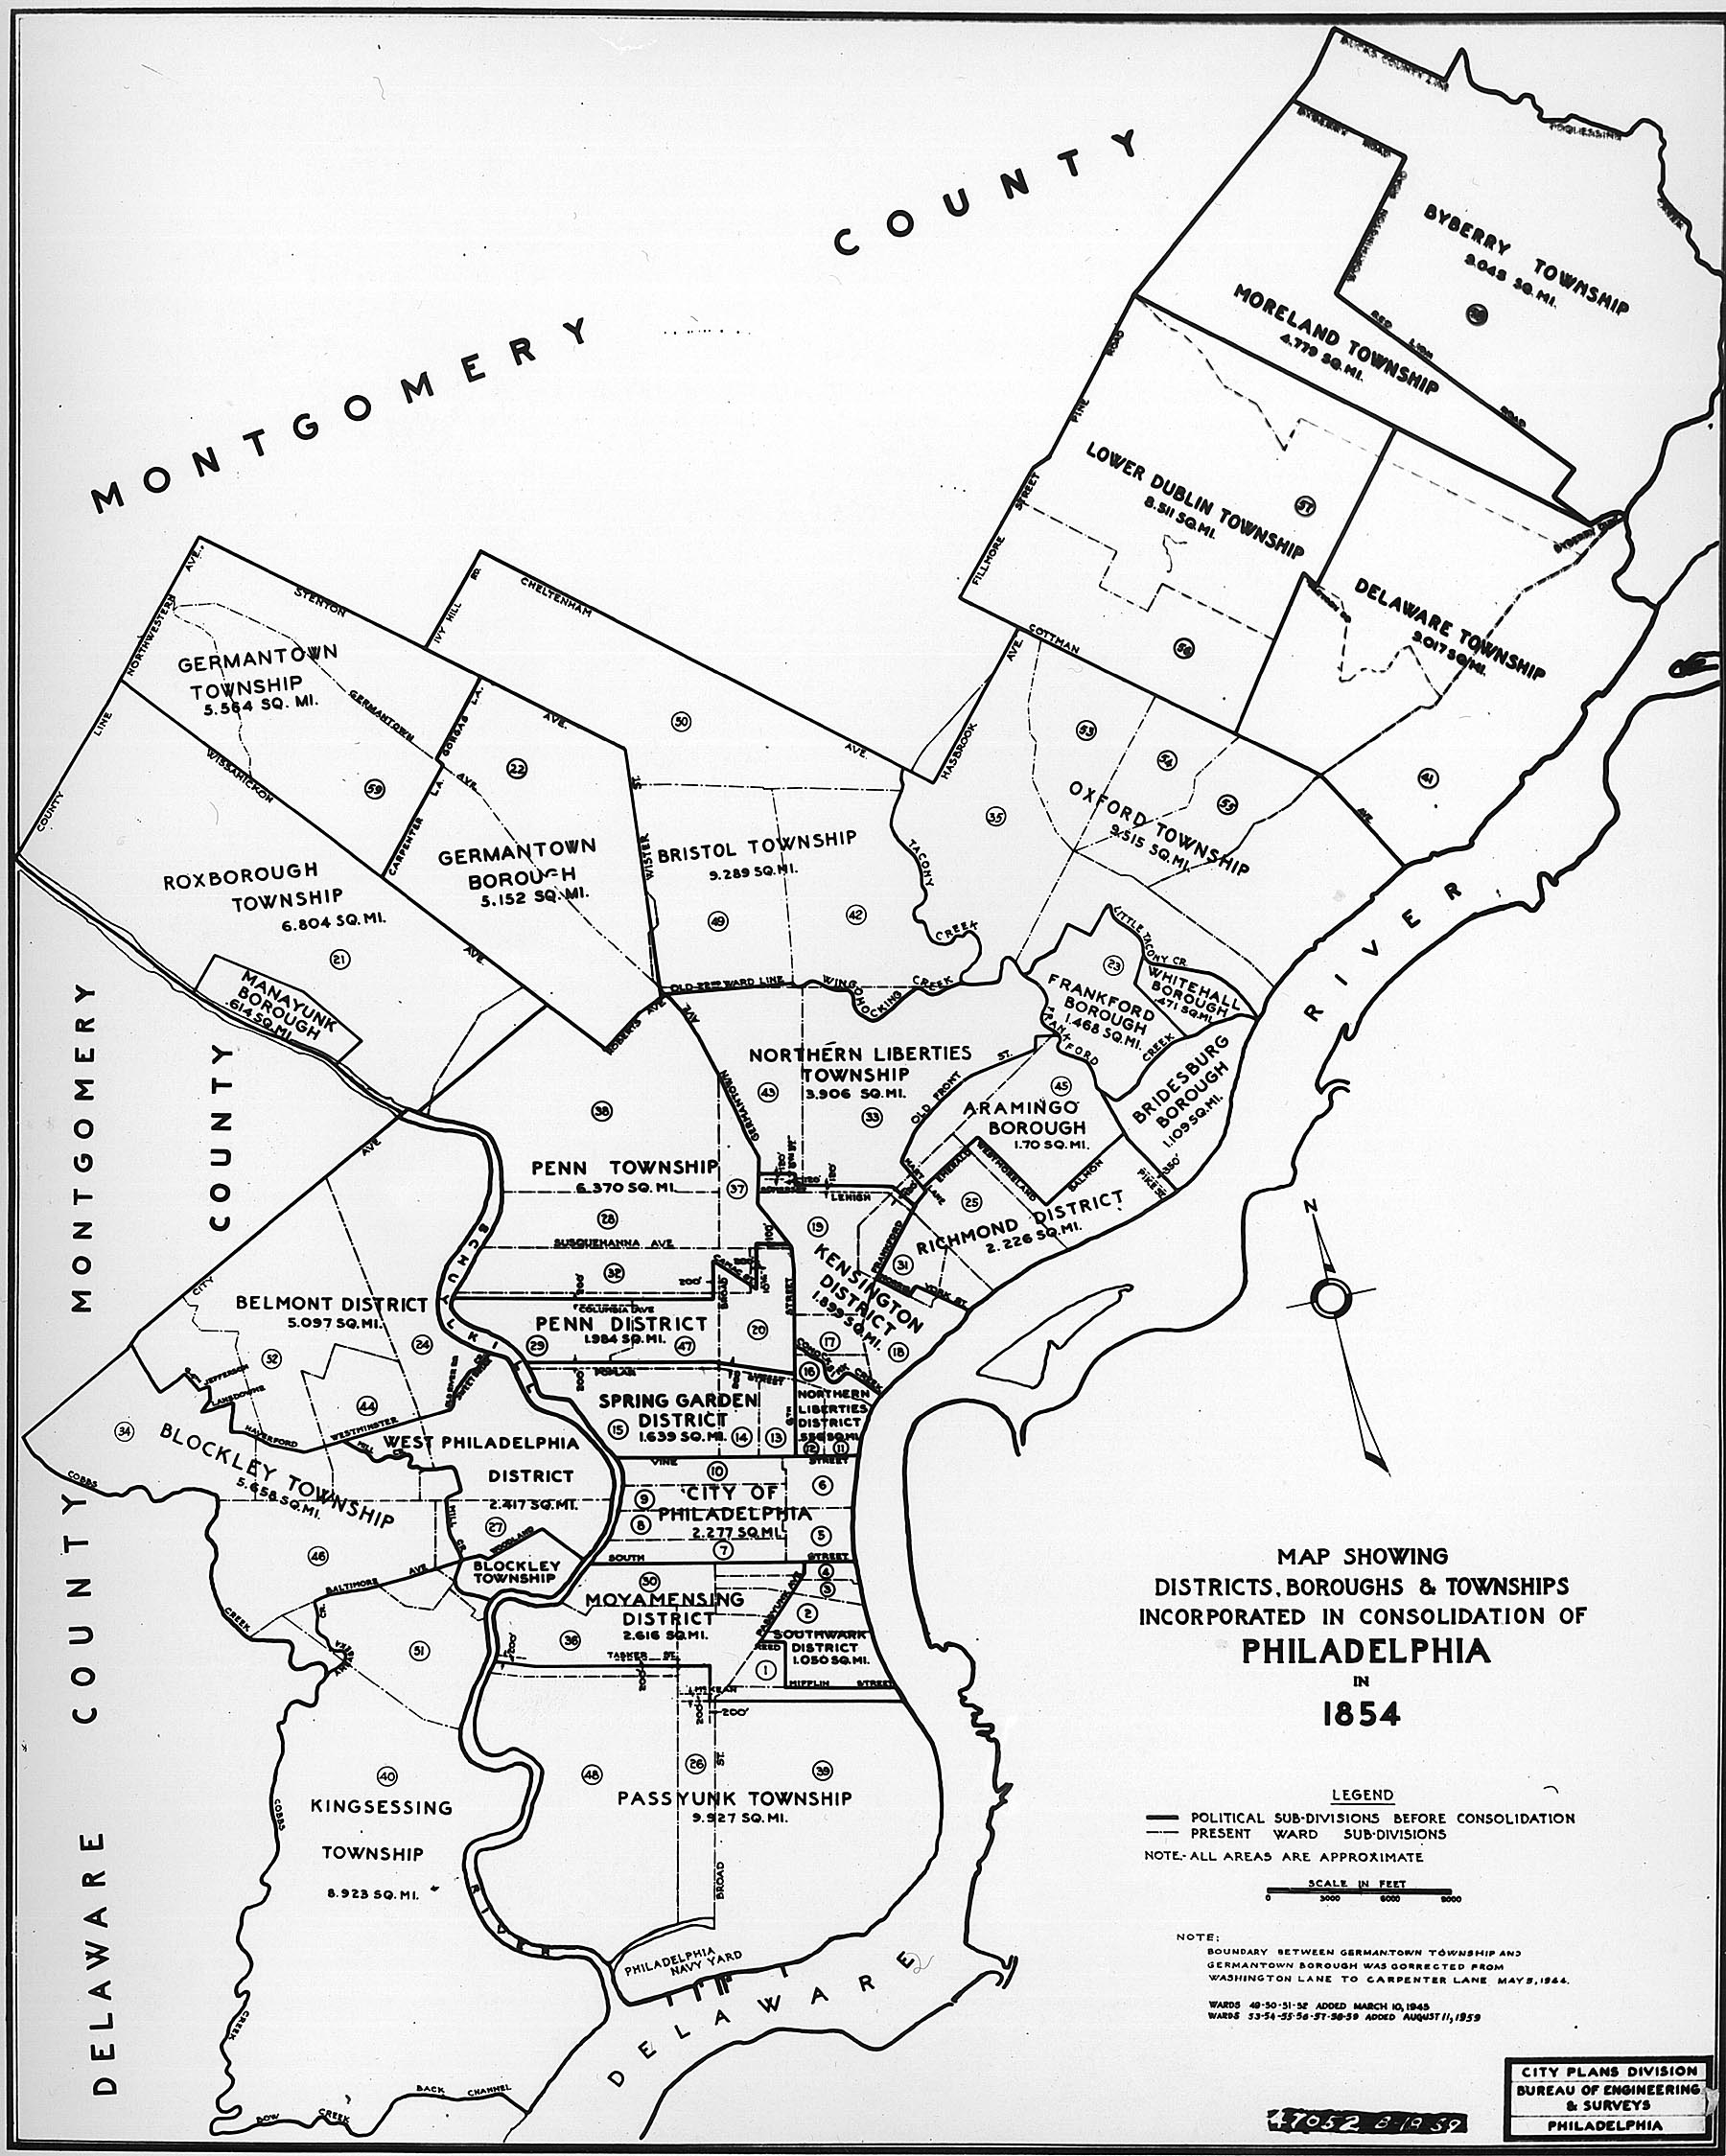 Philadelphia Township Map Philly H2O: Maps